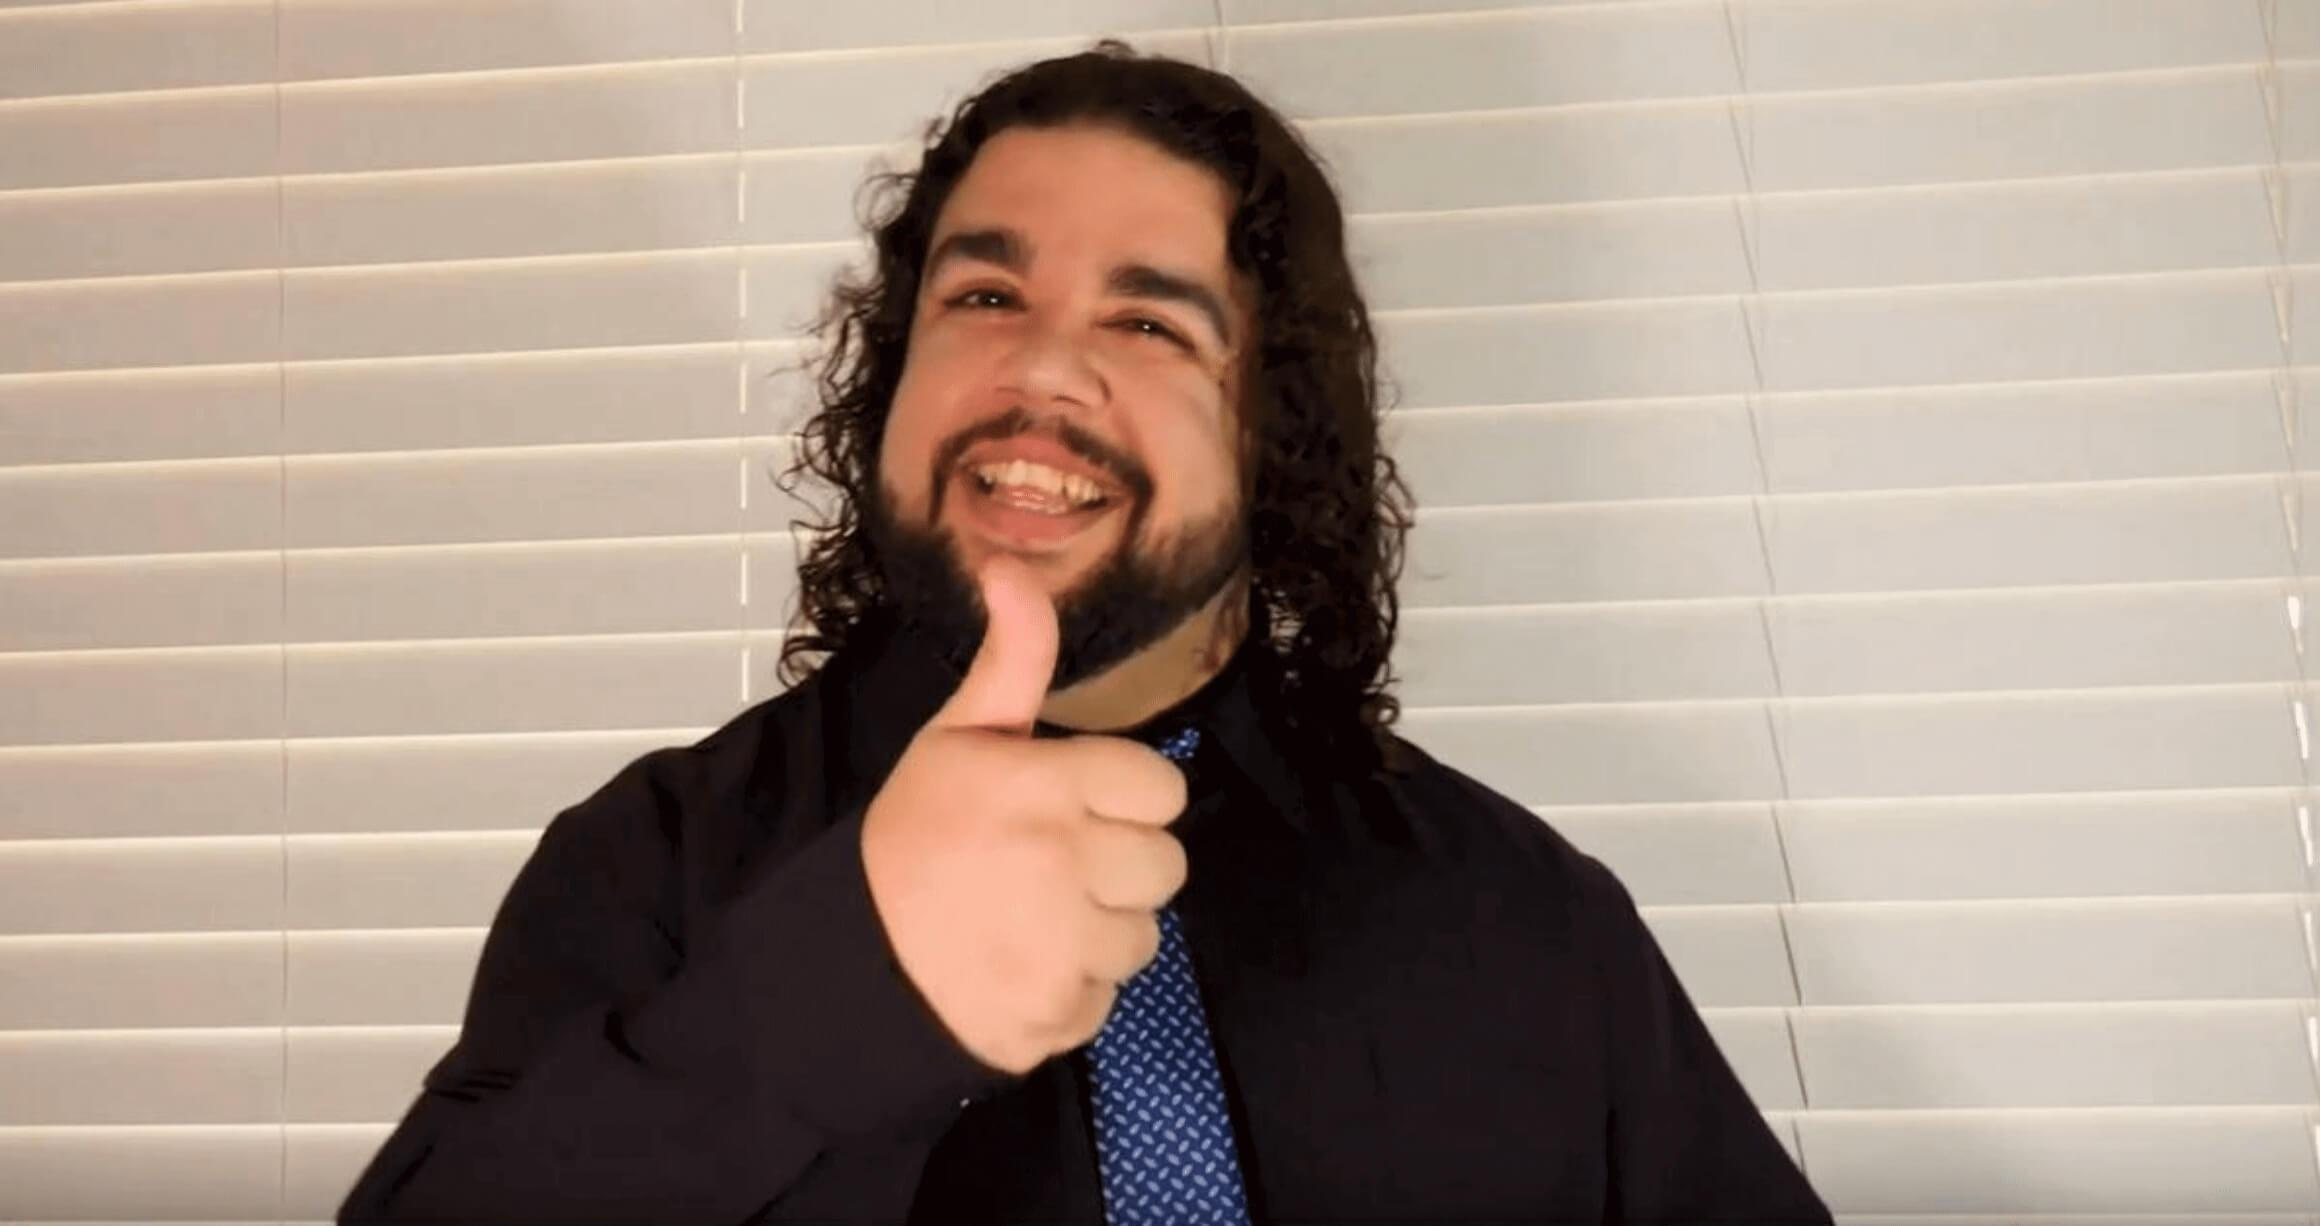 image of young man with shoulder length wavy black hair, smiling at camera and giving thumbs up